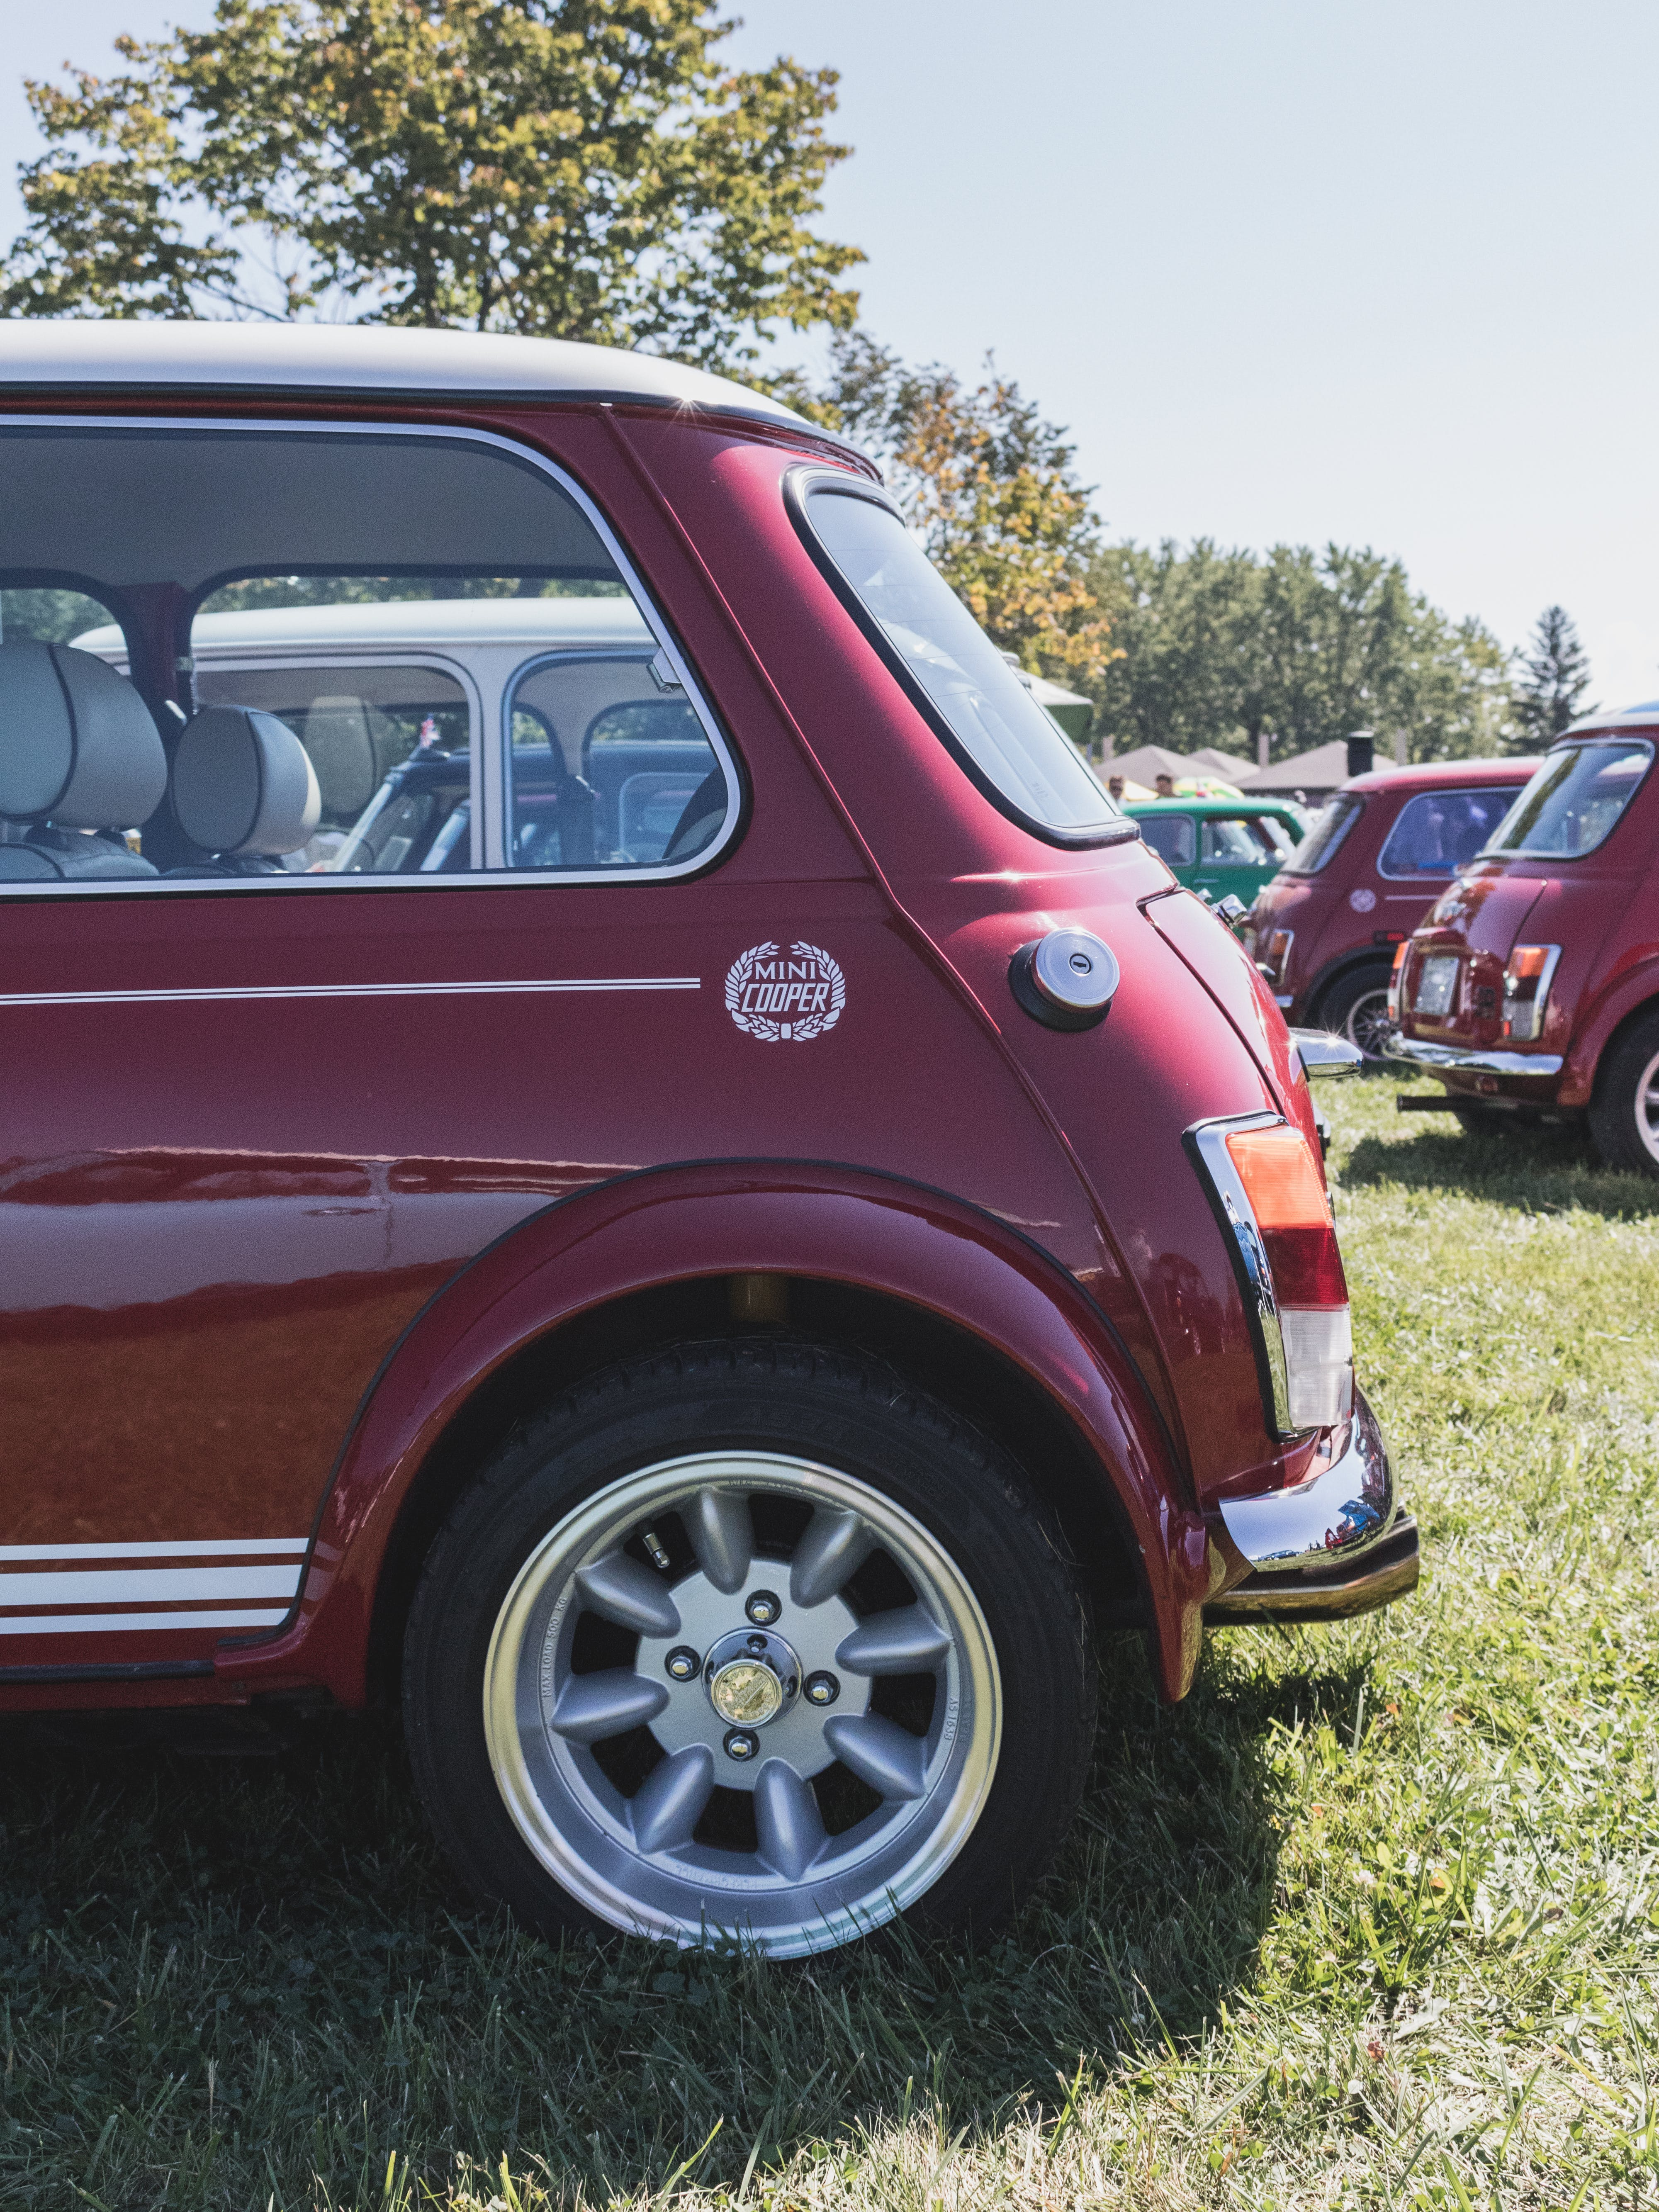 Classic Red Cars